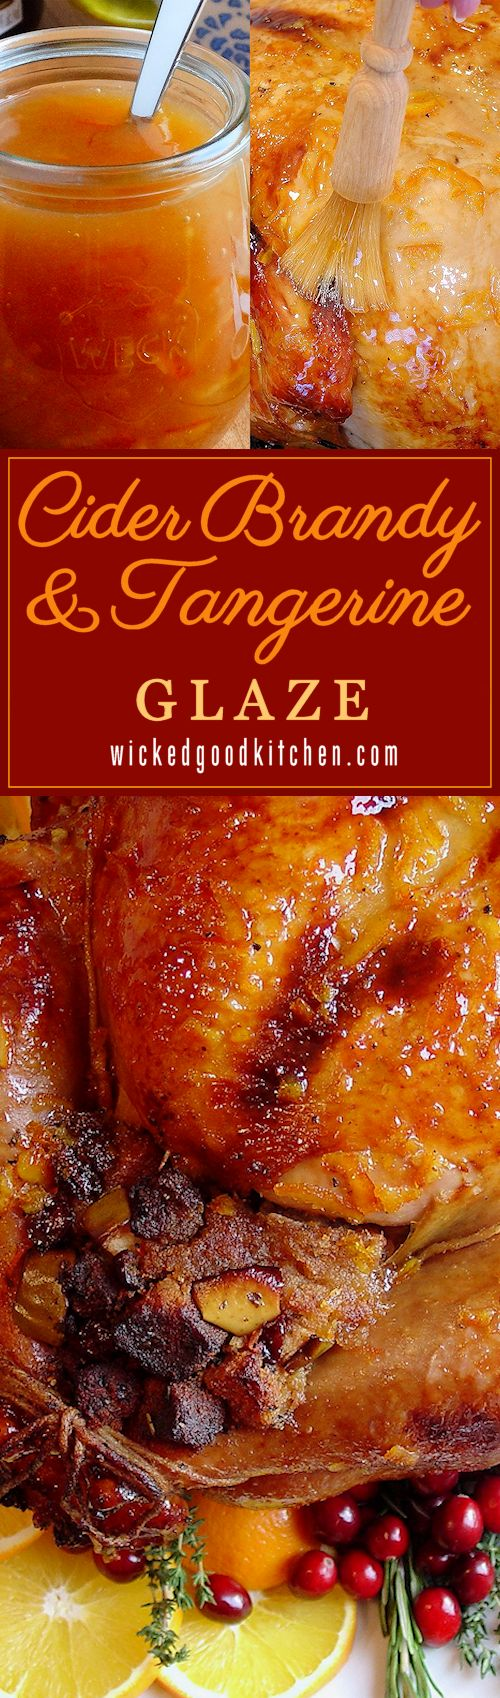 """Cider Brandy and Tangerine Glaze ~ Sublime holiday cider and citrus finishing glaze, kissed with Grand Marnier®, for roasted turkey, pork roast or ham as the sparkling gem on the holiday table. Made in just 15 minutes. Perfect """"crowning touch"""" for #Thanksgiving turkey or #Christmas ham. Guests over the #Holidays will rave! 